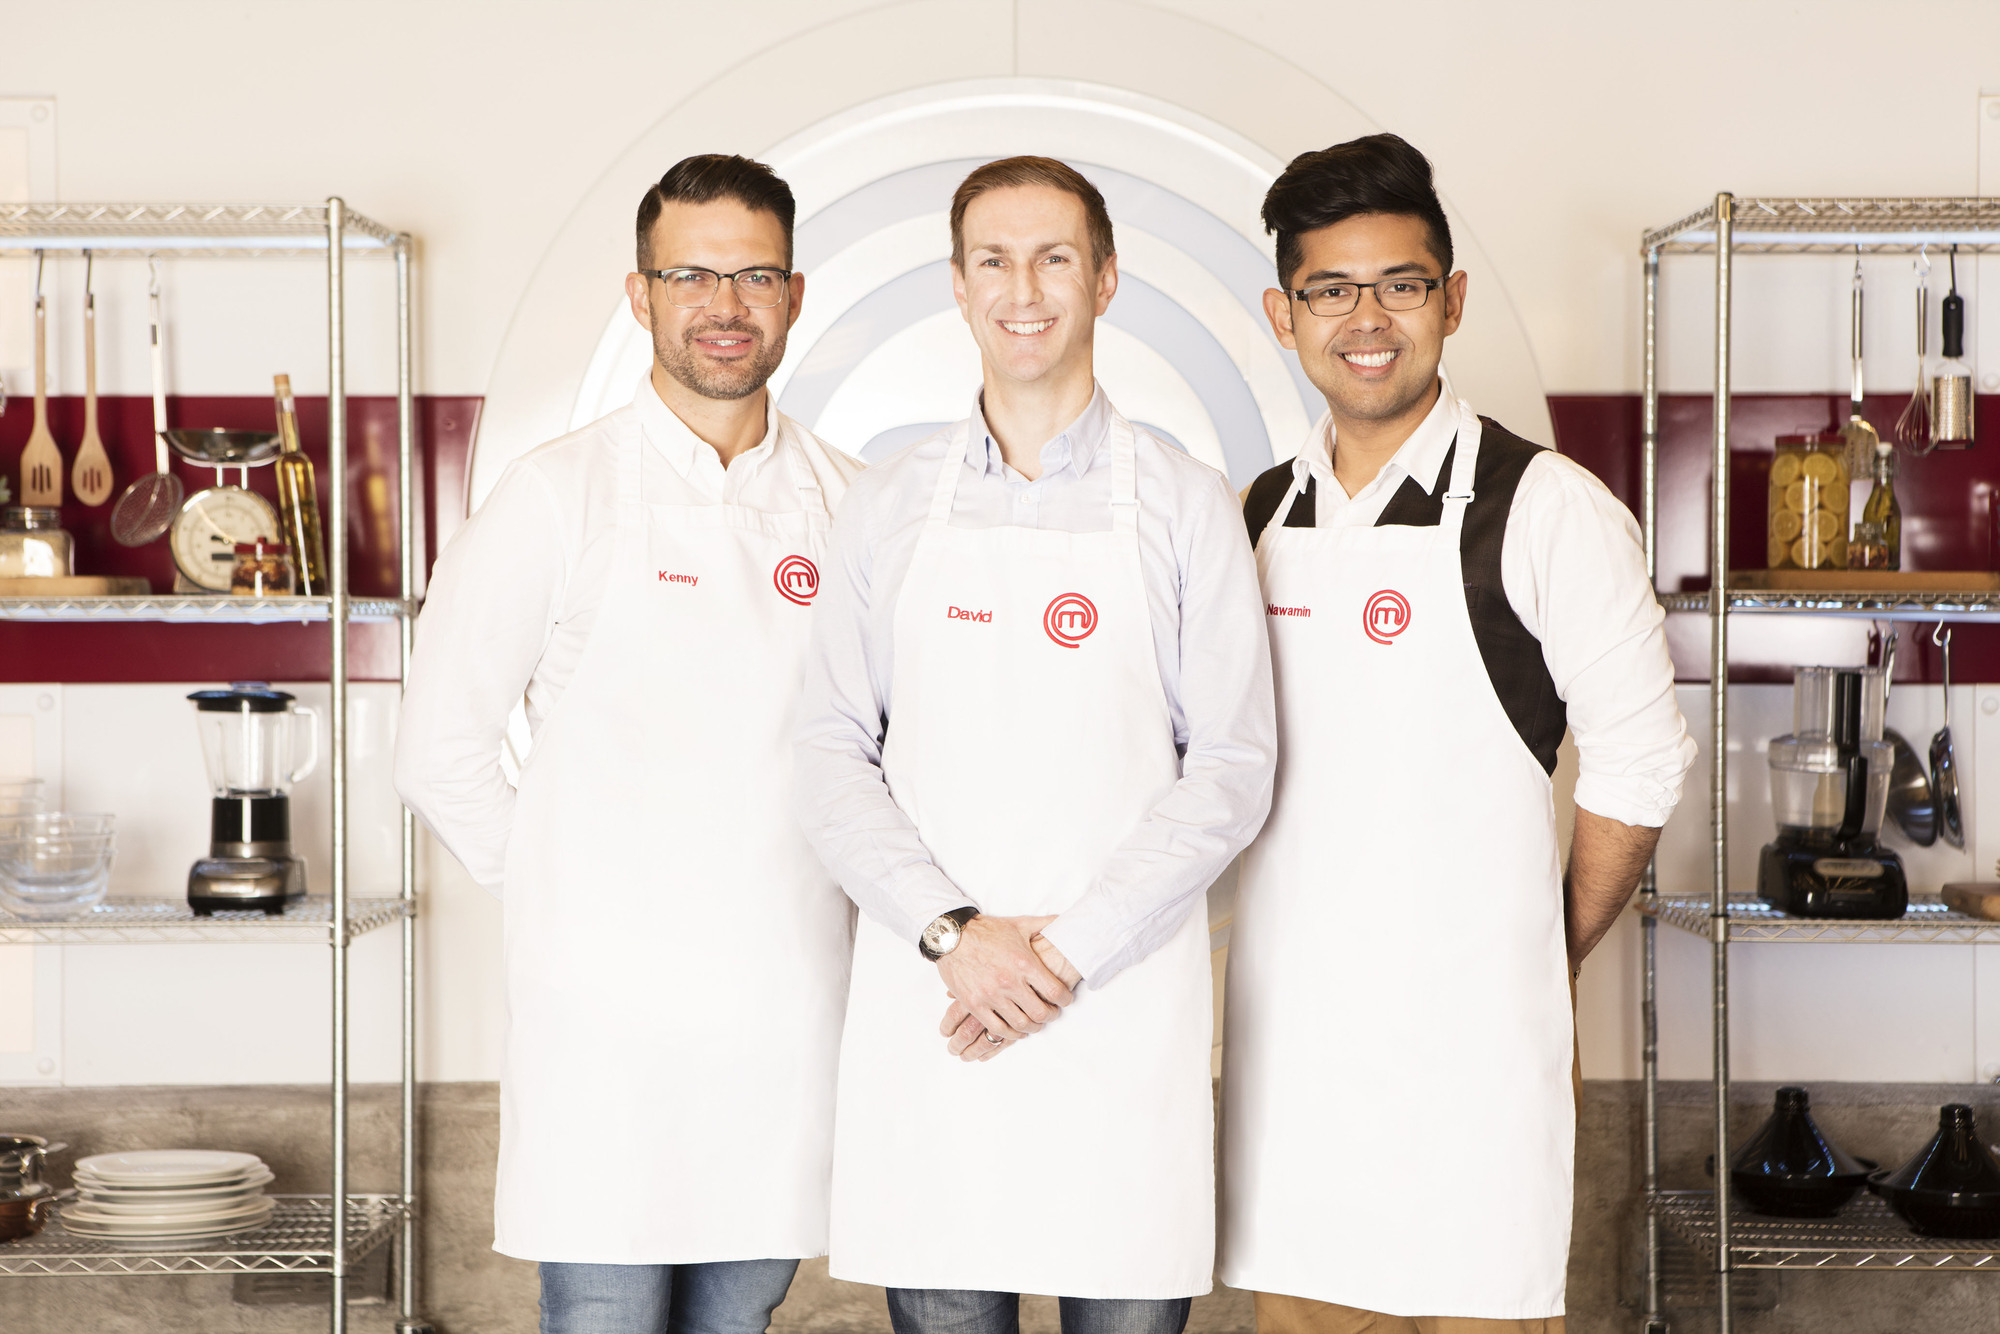 WARNING: Embargoed for publication until 21:01:00 on 12/04/2018 - Programme Name: Masterchef - TX: 13/04/2018 - Episode: The Final 3 (No. The Final 3) - Picture Shows: **STRICTLY EMBARGOED UNTIL 21:01HRS ON THURSDAY 12TH APRIL 2018** (L-R) Kenny, David, Nawamin - (C) Shine TV Ltd - Photographer: Production